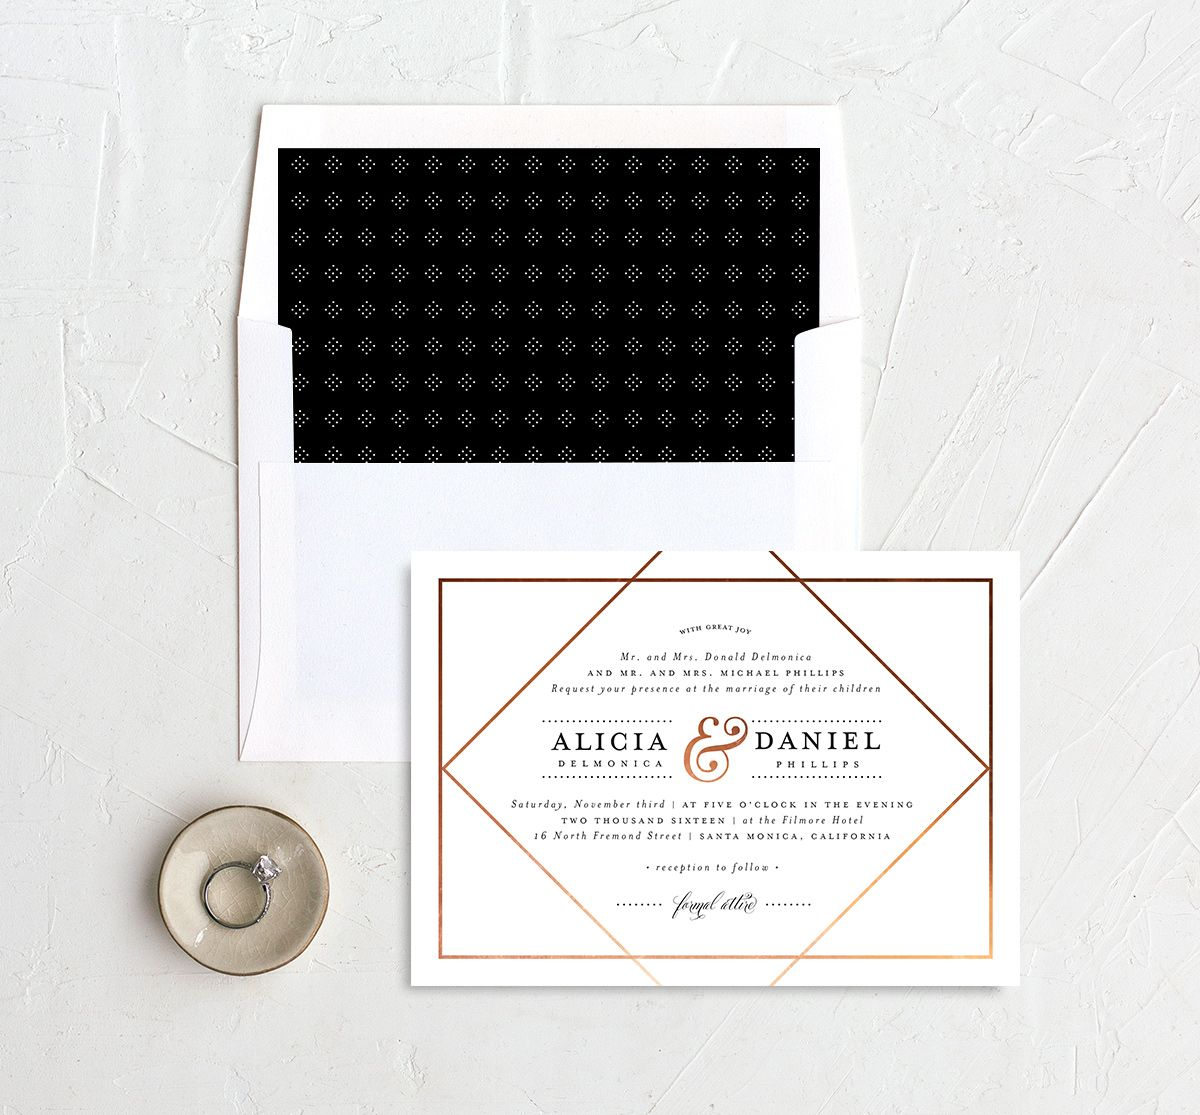 Formal Ampersand invites with liner in white